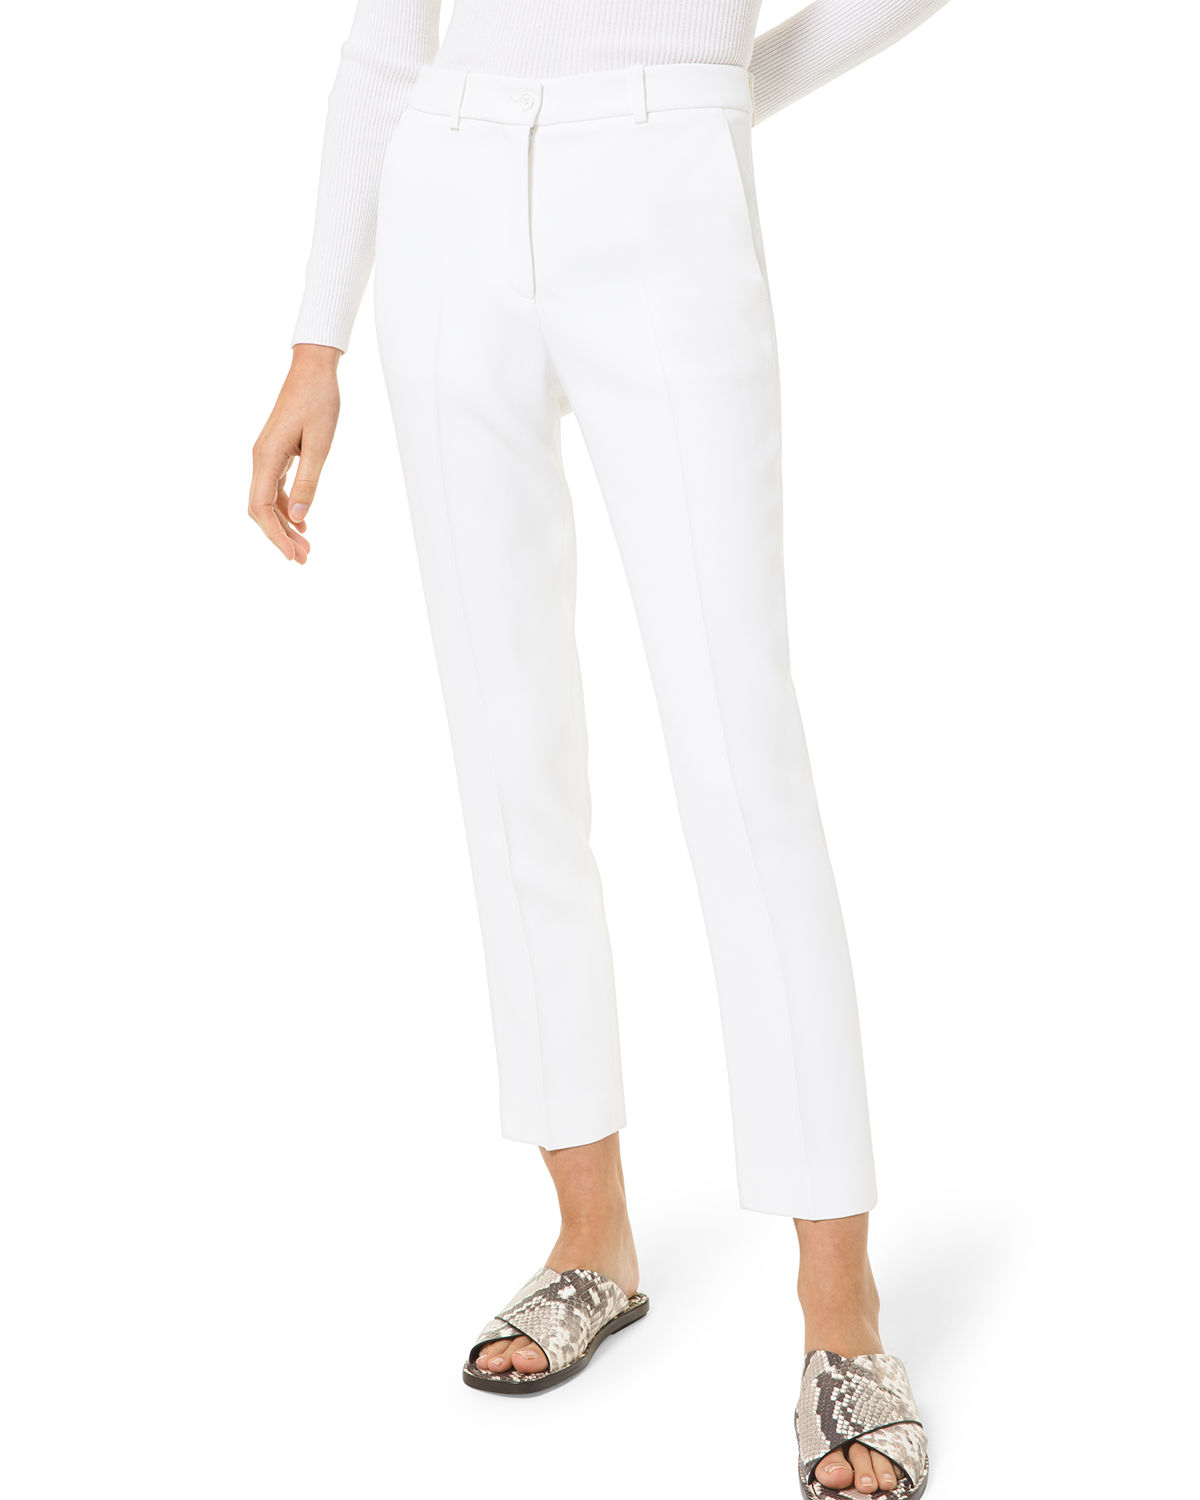 Michael Kors SAMANTHA SLIM-LEG PANTS